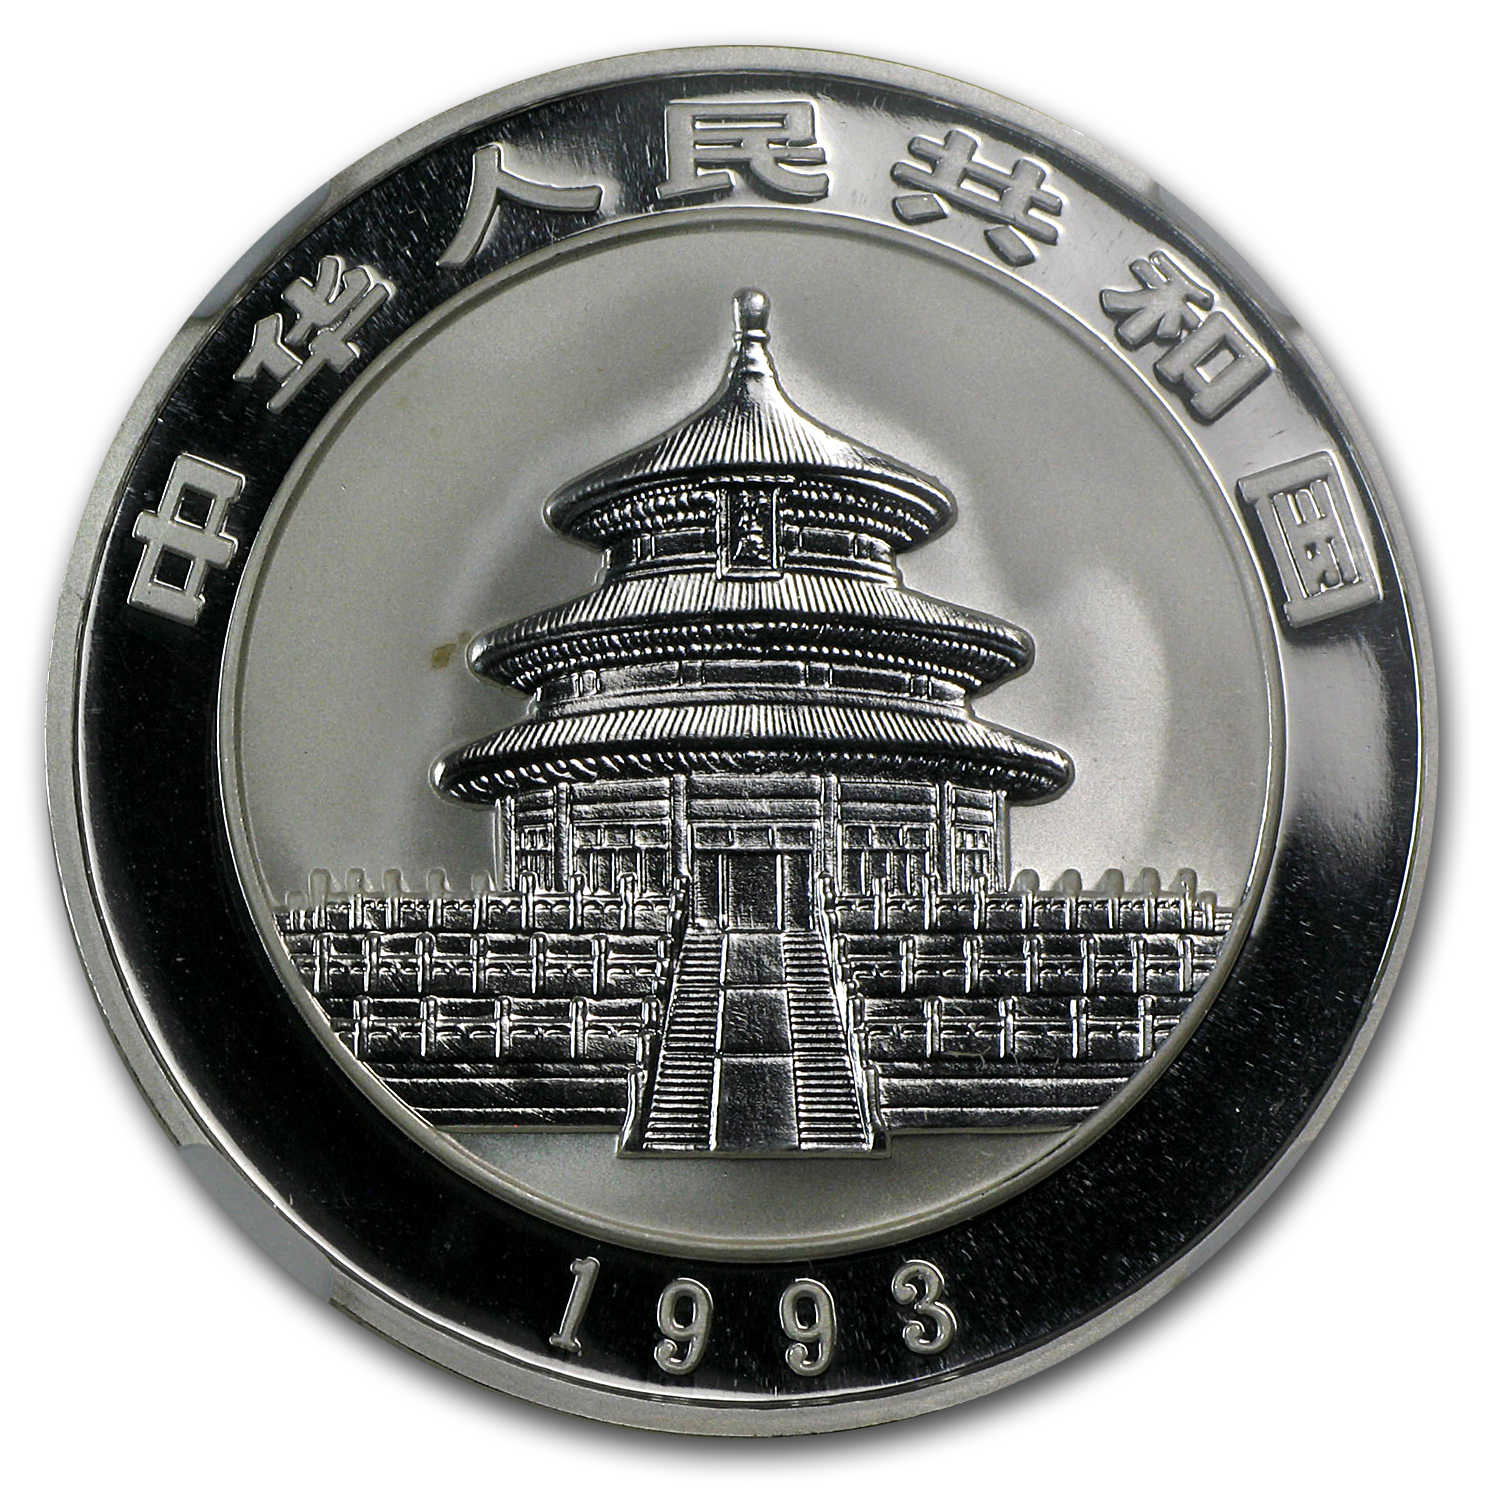 1993-P Silver Chinese Panda 1 oz (Proof) NGC PF-68 UCAM